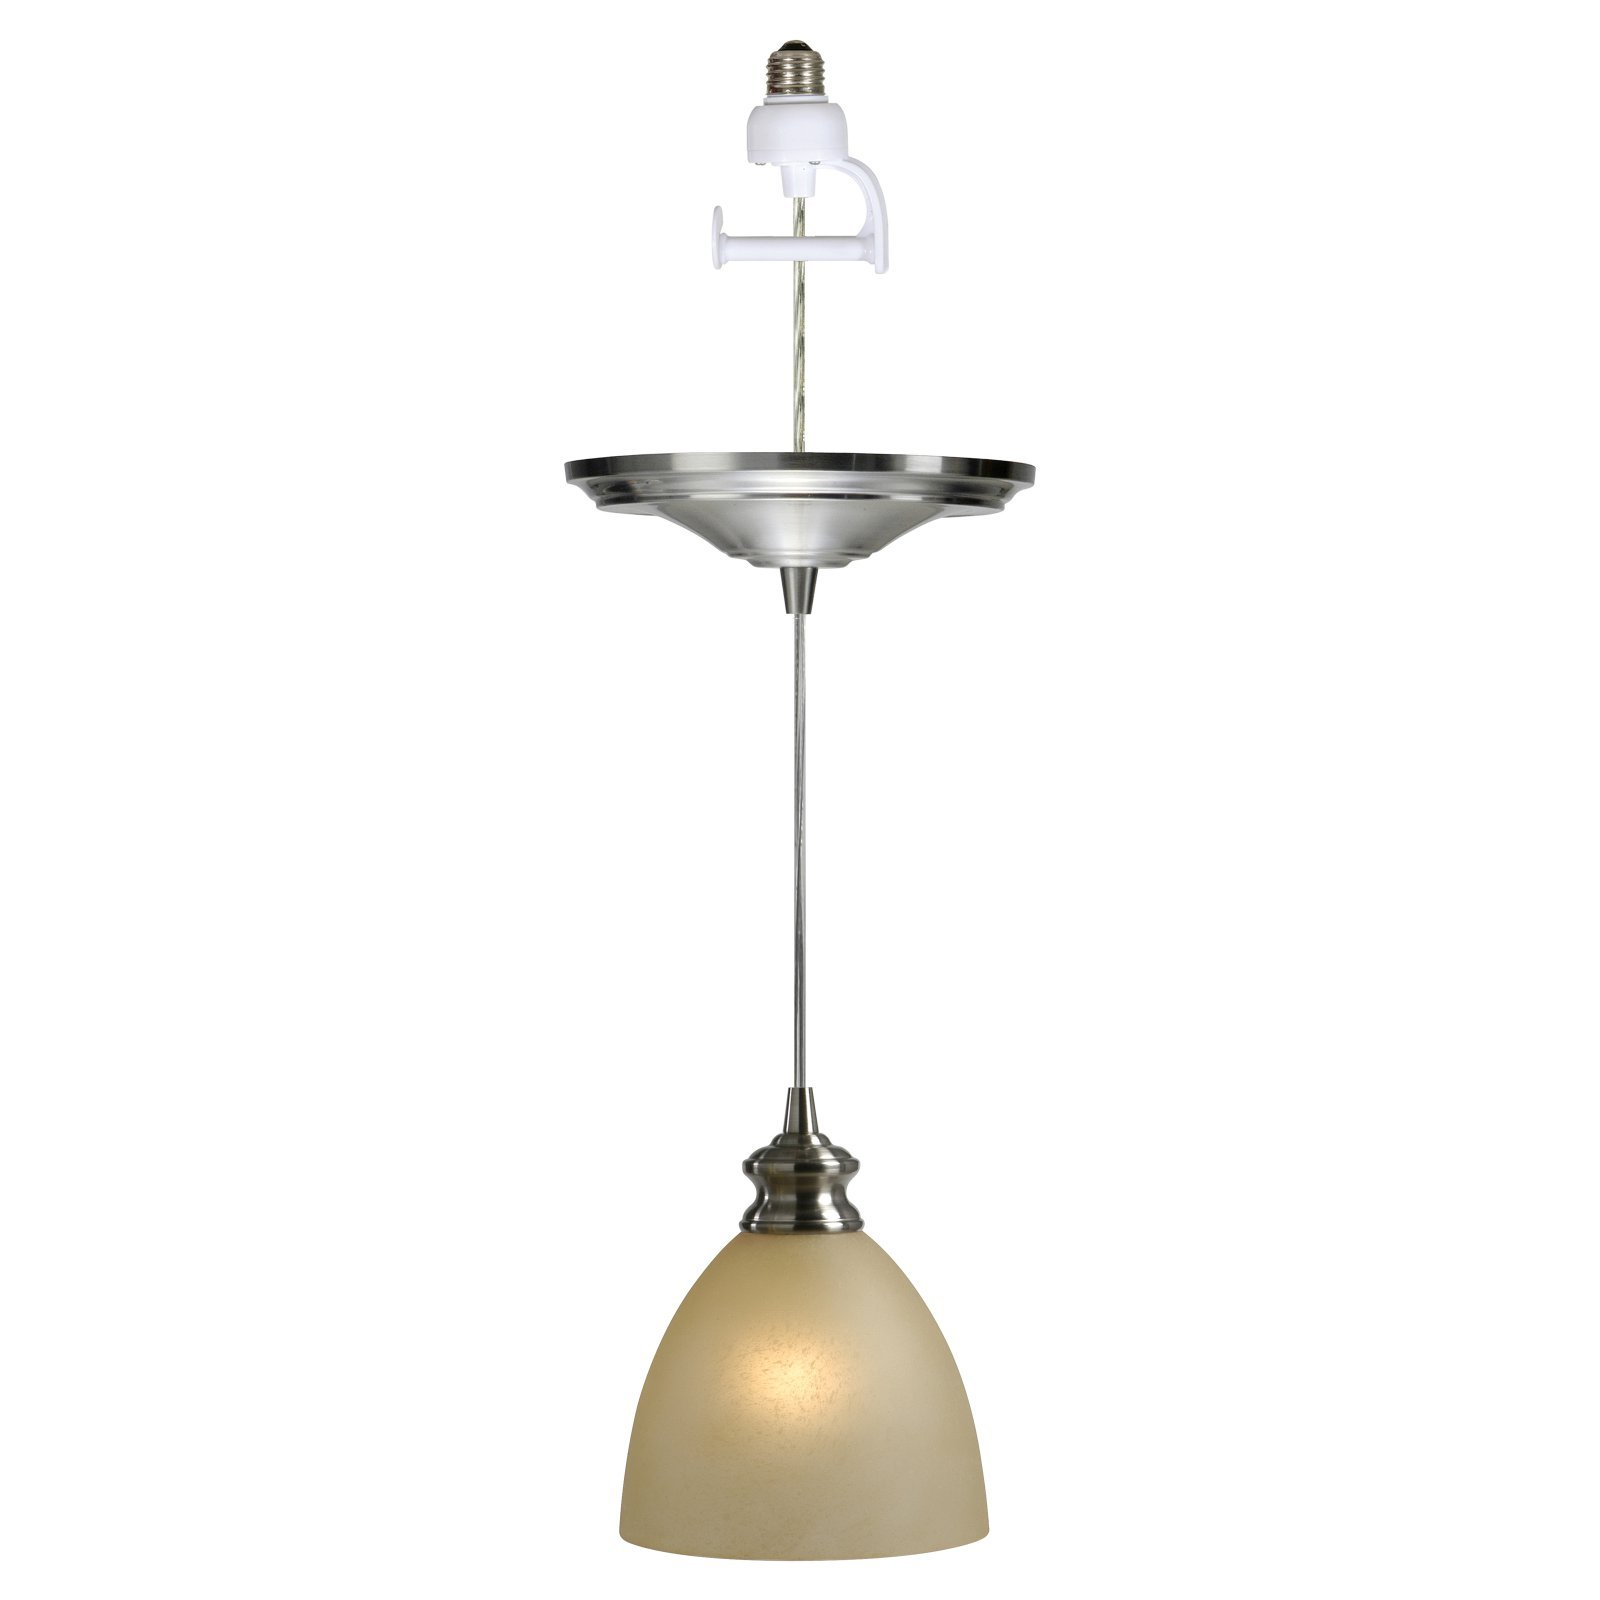 Worth Home Products Instant Screw in Pendant Light with Parchment Glass Shade